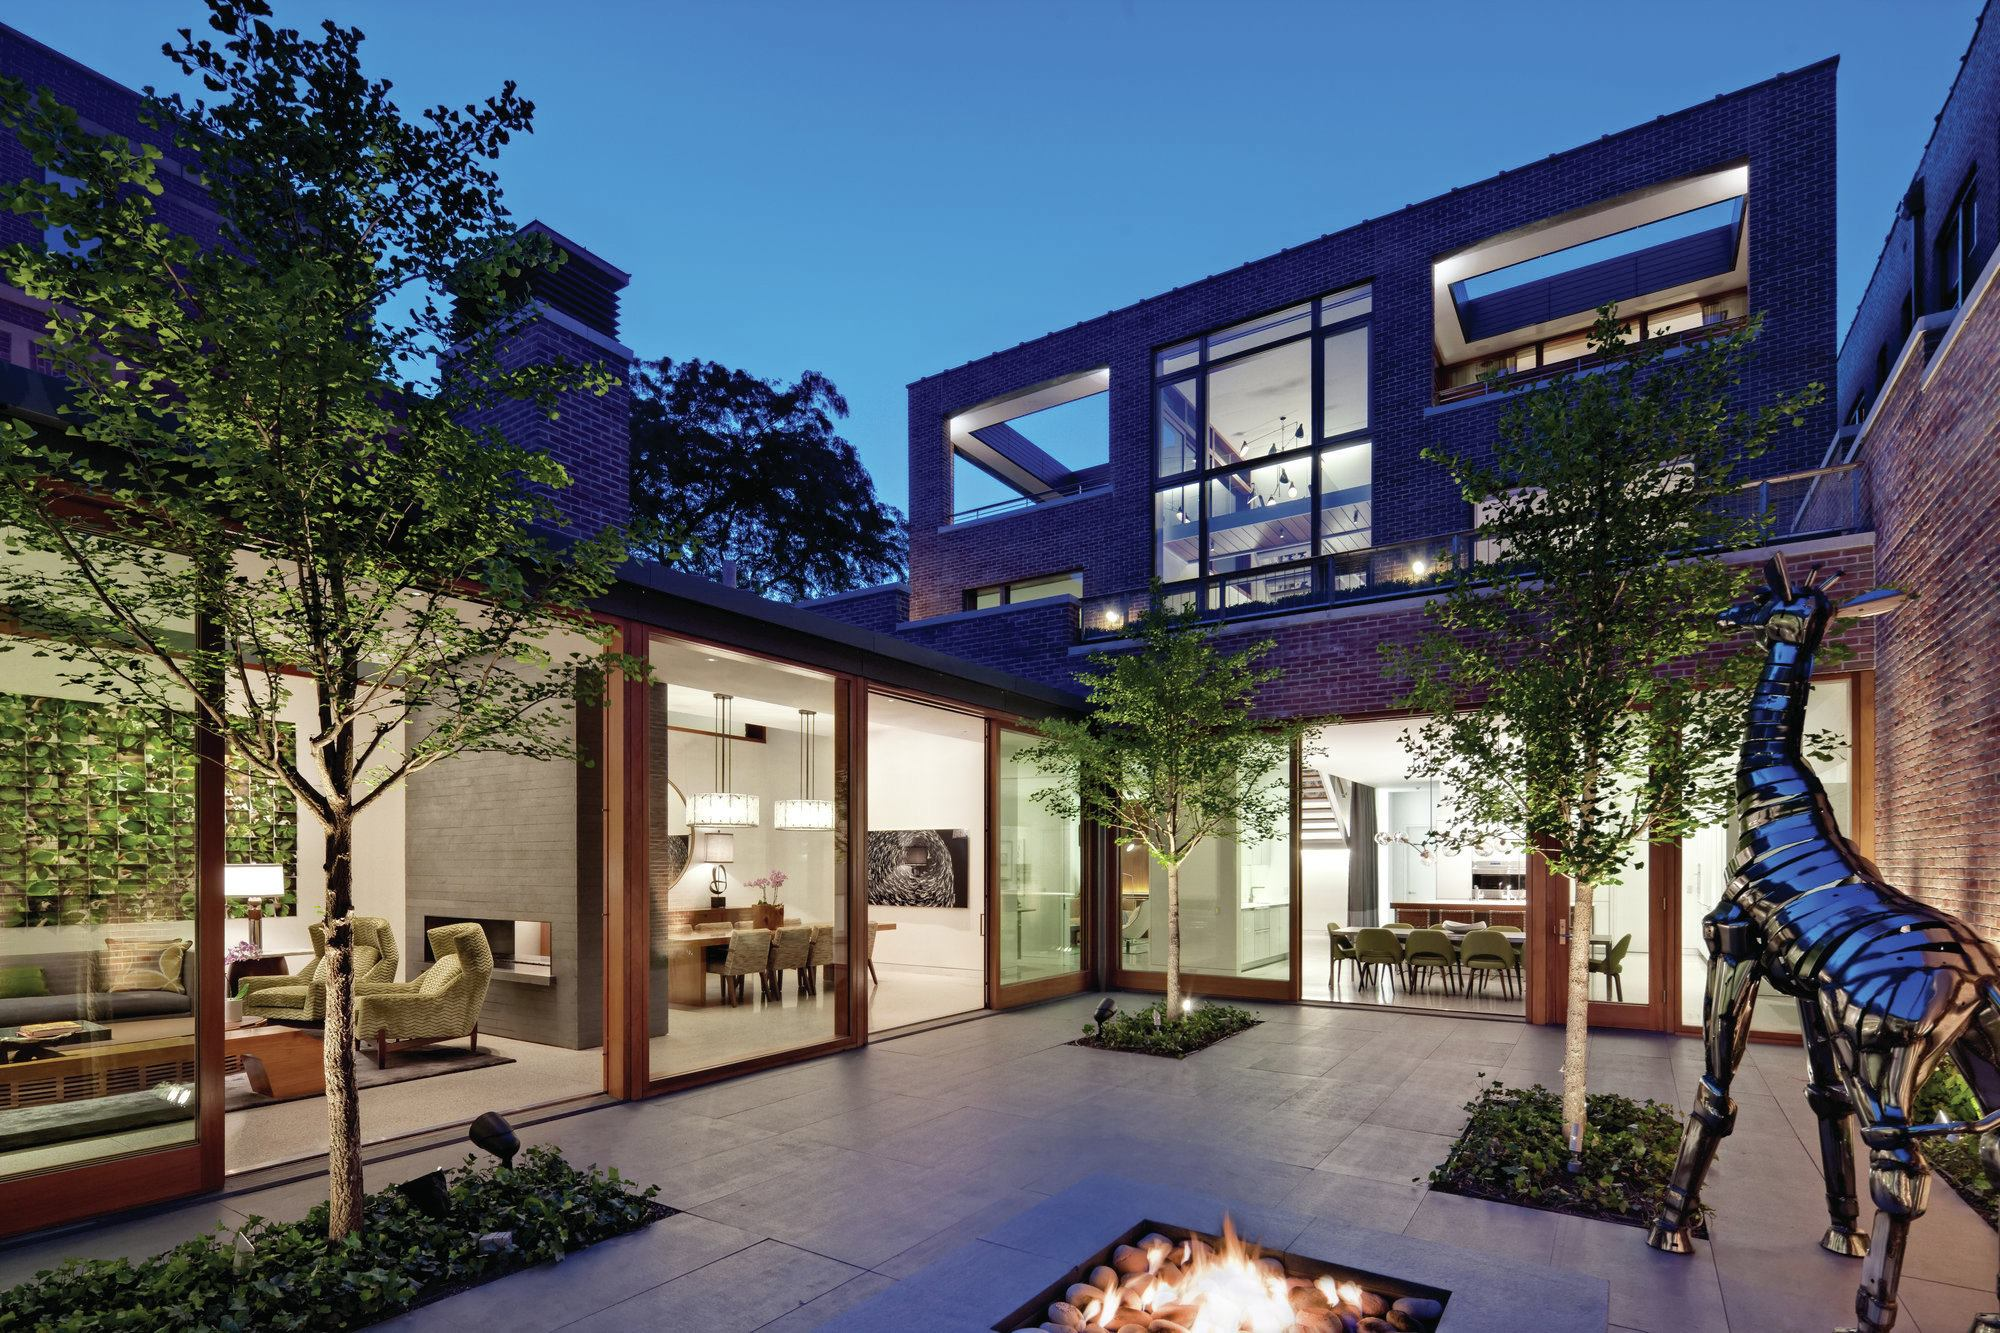 2013 Custom Home Design Awards  Magazine